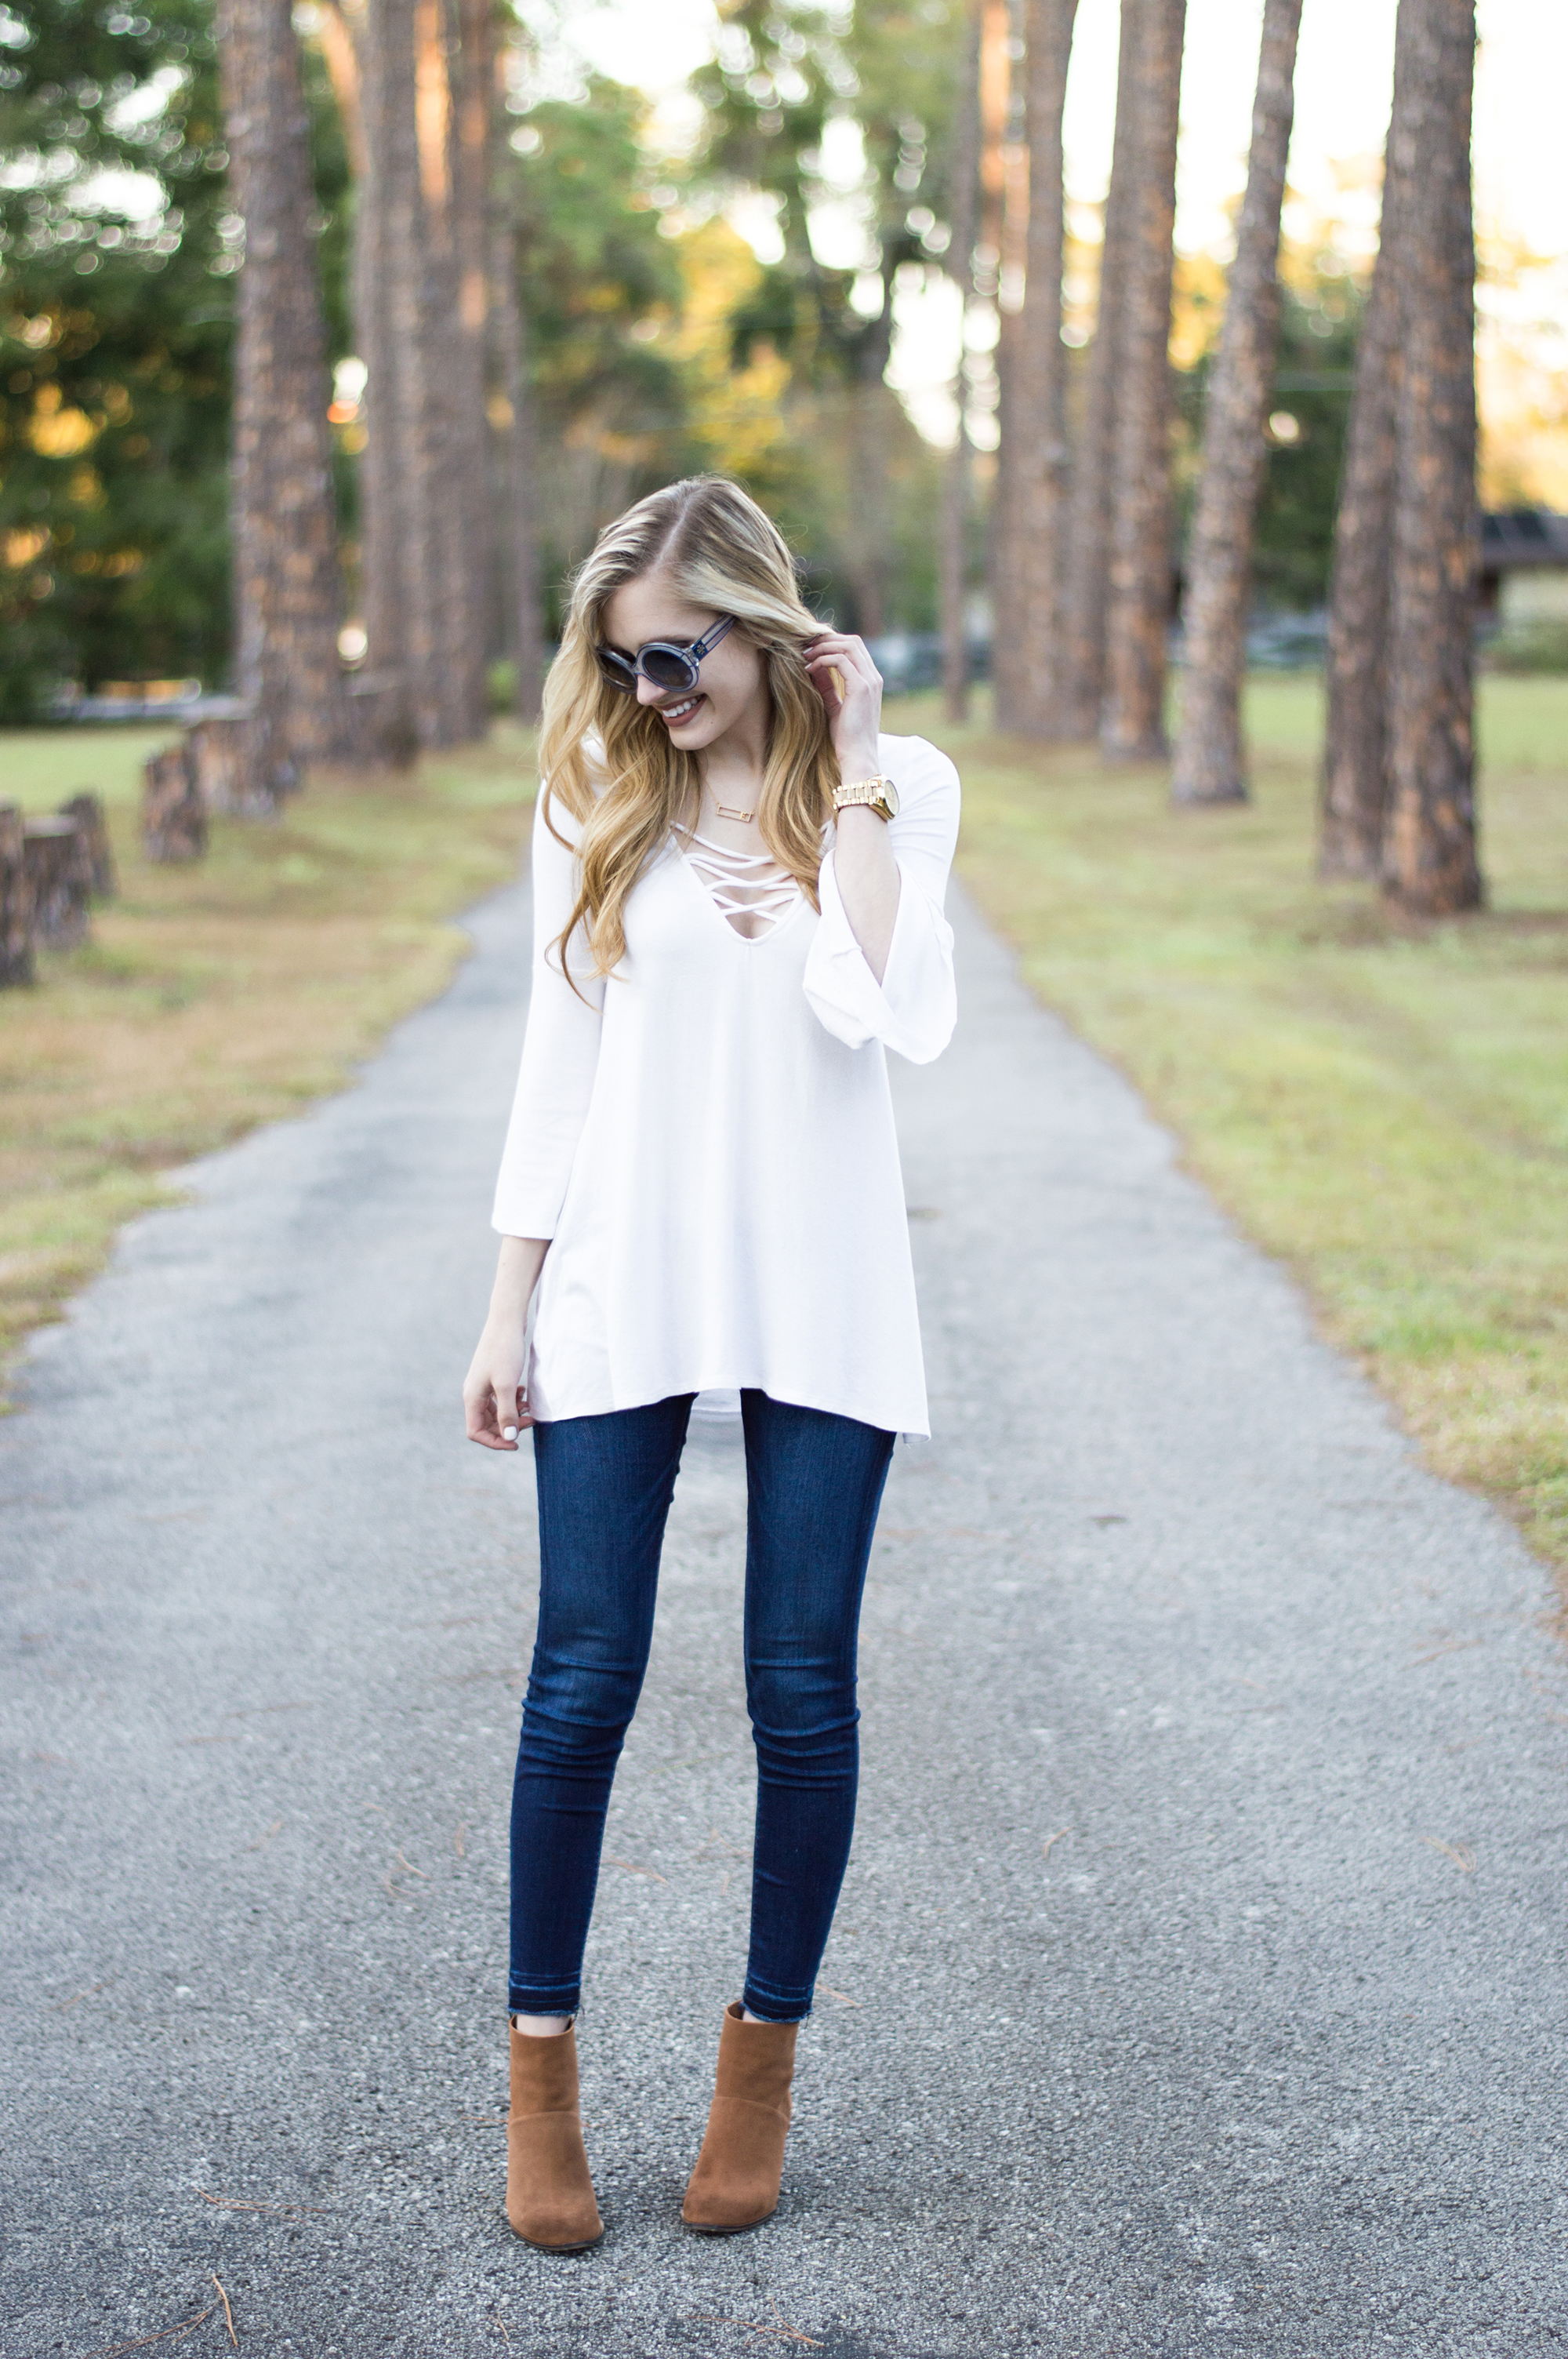 styelled-blog-elle-elisabeth-florida-blogger-fashion-style-ootd-urban-outfitters-chinese-laundry-skinny-jeans-hudson-denim-tory-burch-lace-up-fblogger-20